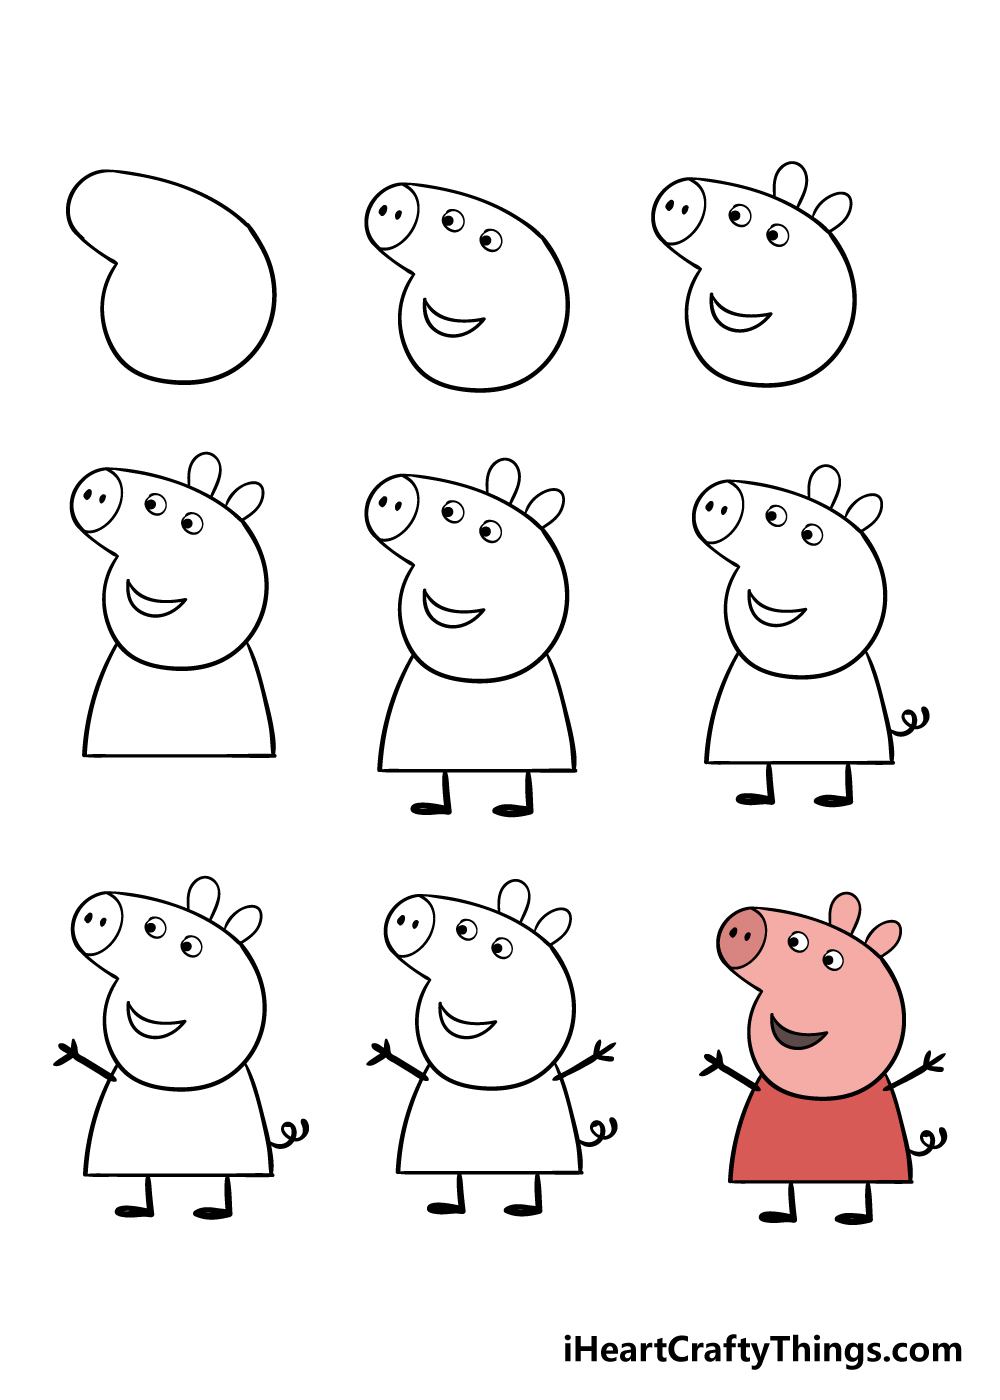 how to draw peppa pig in 9 steps